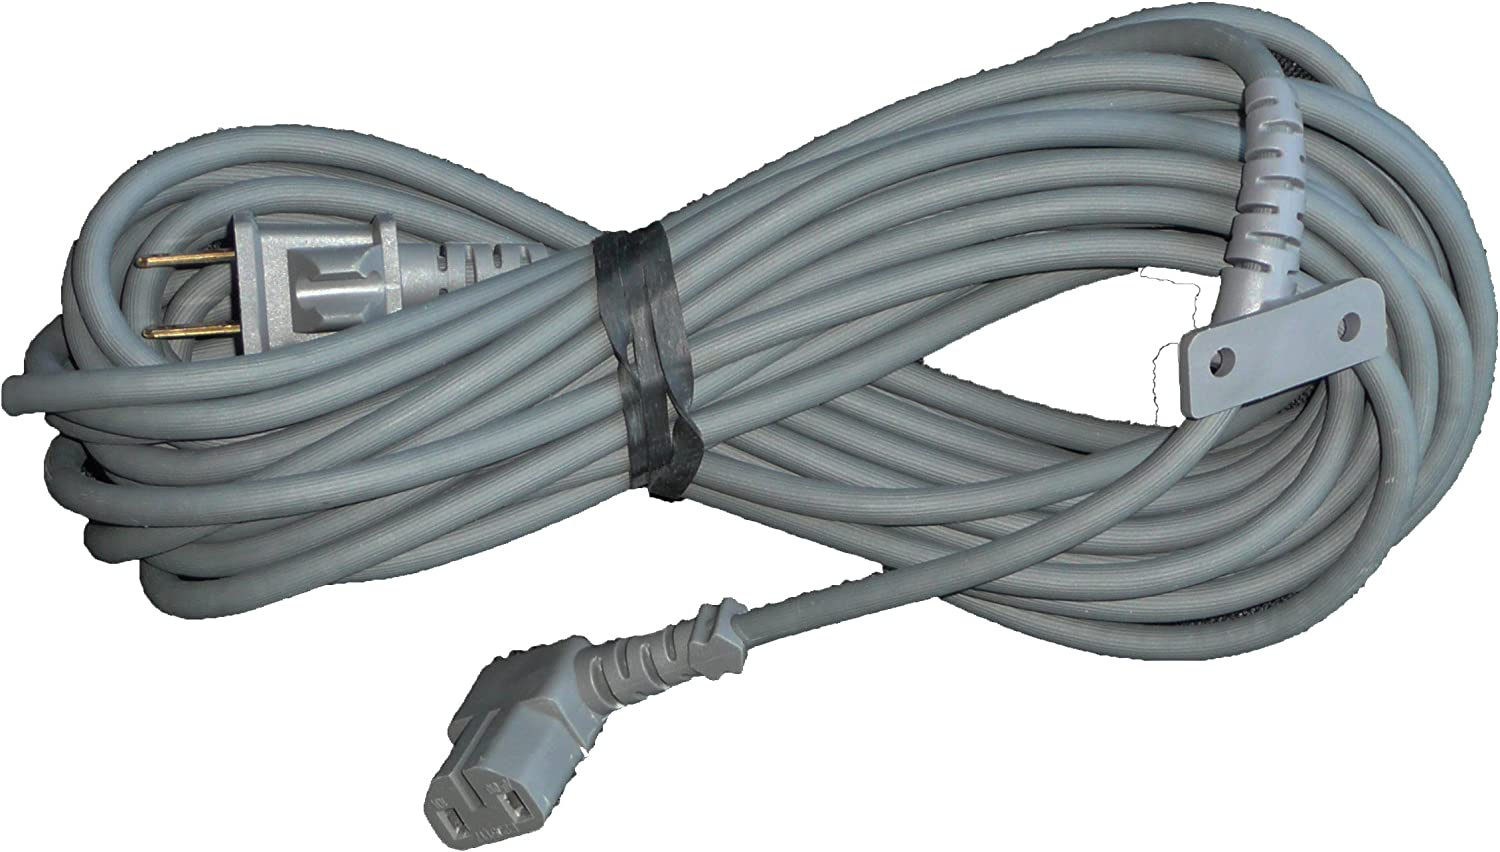 2 Prong Genuine SE G10 G9 Part #192006 Cable 120 Volt Kirby Sentria Vacuum Cleaner 32 Foot Electric Power Cord